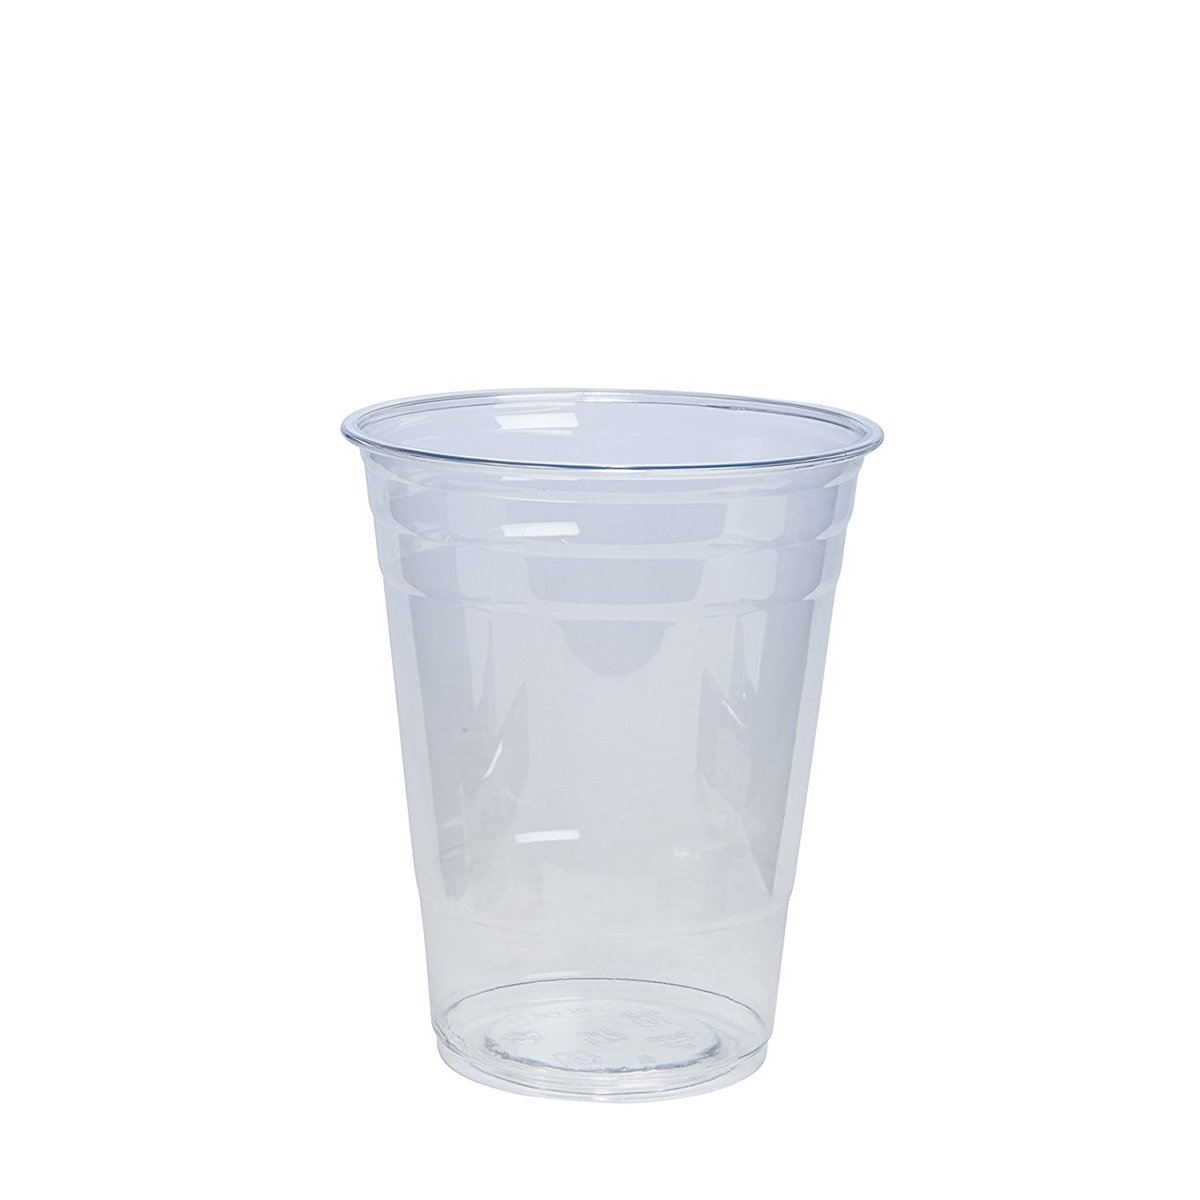 16 oz. Crystal Clear PET Plastic Cups [100 Pack] by Comfy Package (Image #2)